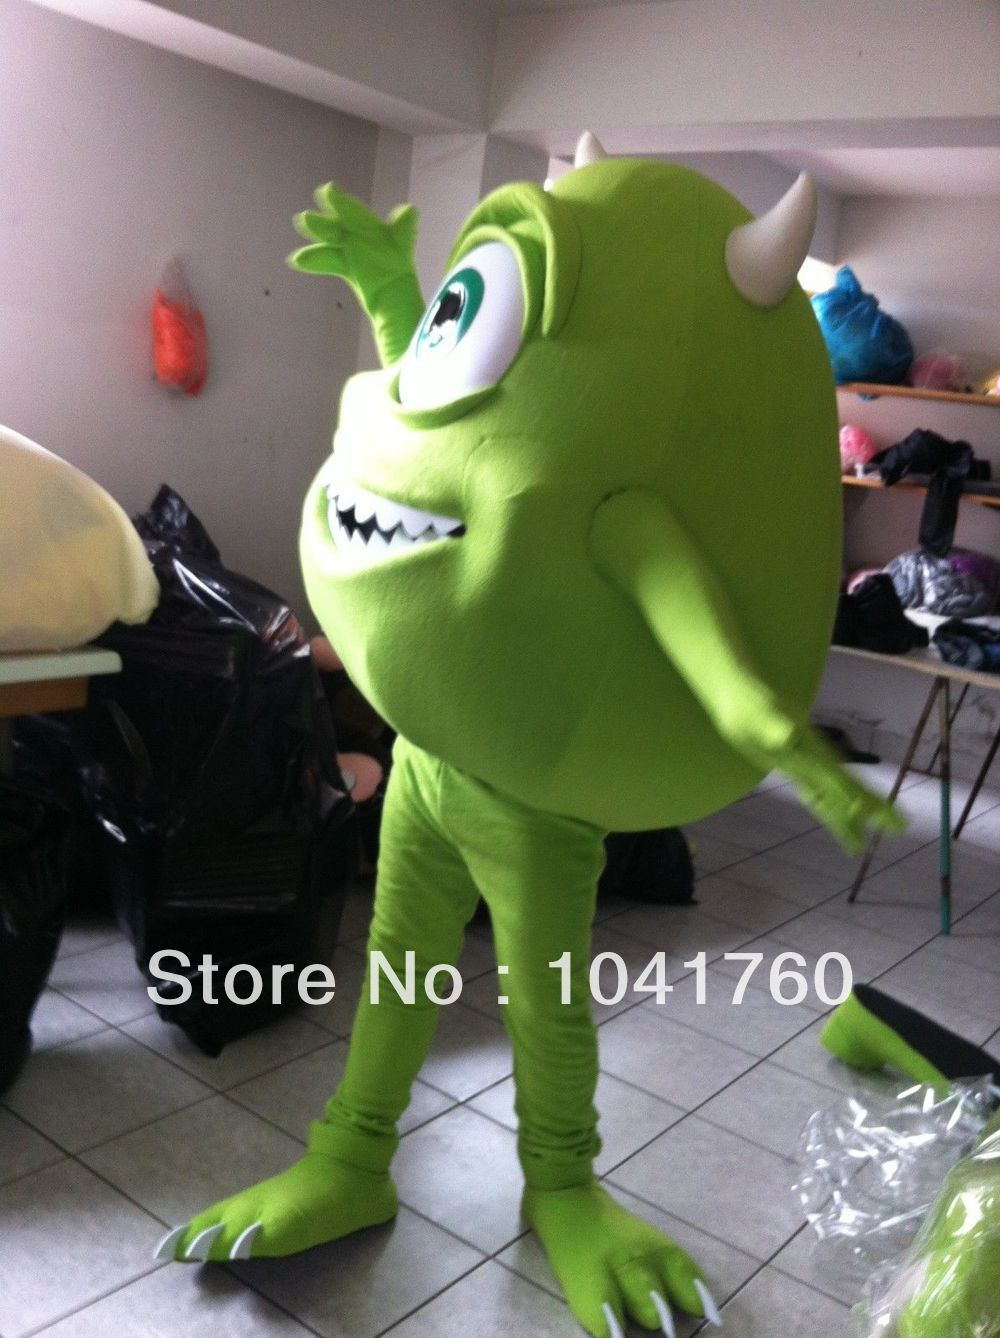 Hot sale New Arrive NEW MIKE MONSTER INC SULLY SULLY GRU MINION Mascot Costume adult Fancy Dress Charactor school mascot costume-in Mascot from Novelty ... : mike monsters inc halloween costume  - Germanpascual.Com